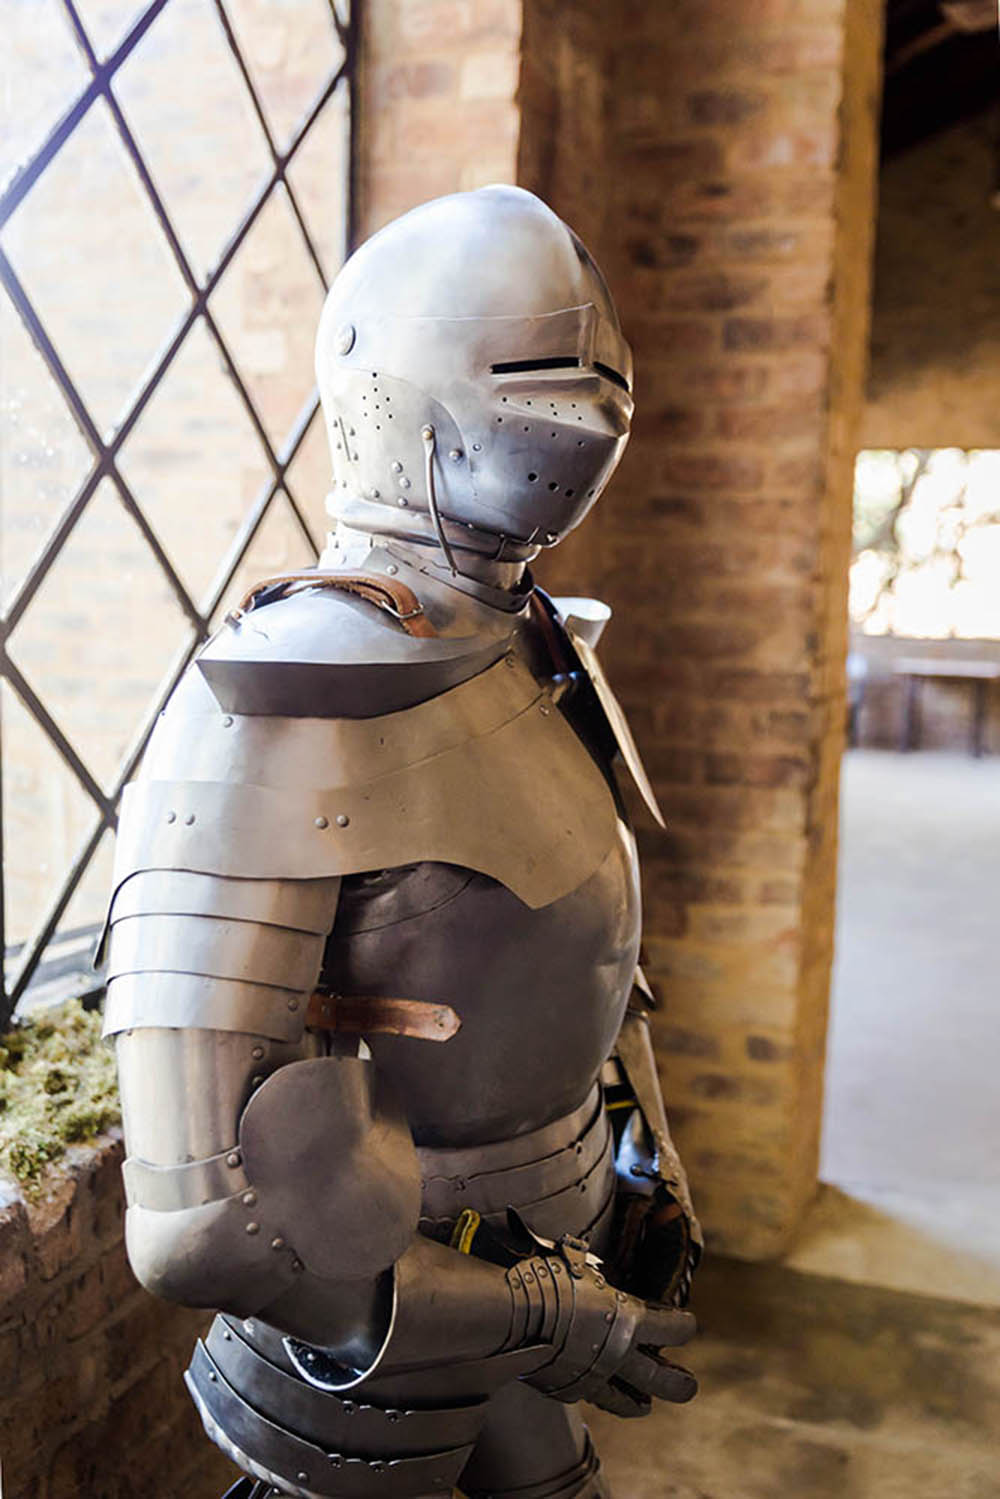 medieval-themed-wedding-medieval-wedding-dgr-photography-castle-wedding-13